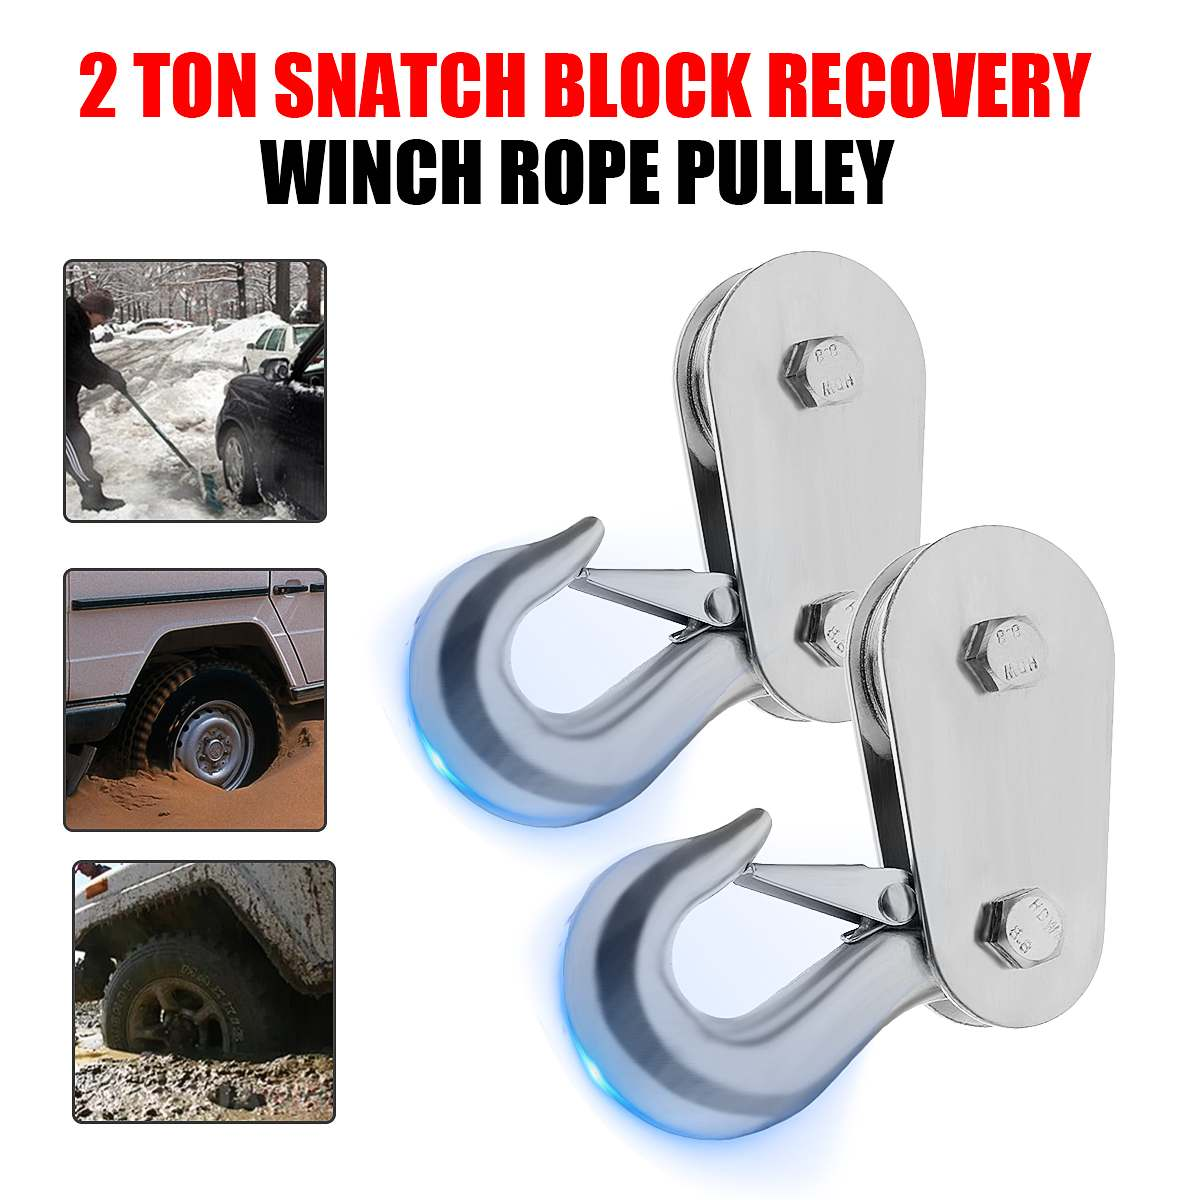 Autoleader Heavy 4Types 2 4 8 10 Ton Tonne Snatch Block Pulley Capacity Recovery Winch Pulley Durable Black Powder Coated Heavy